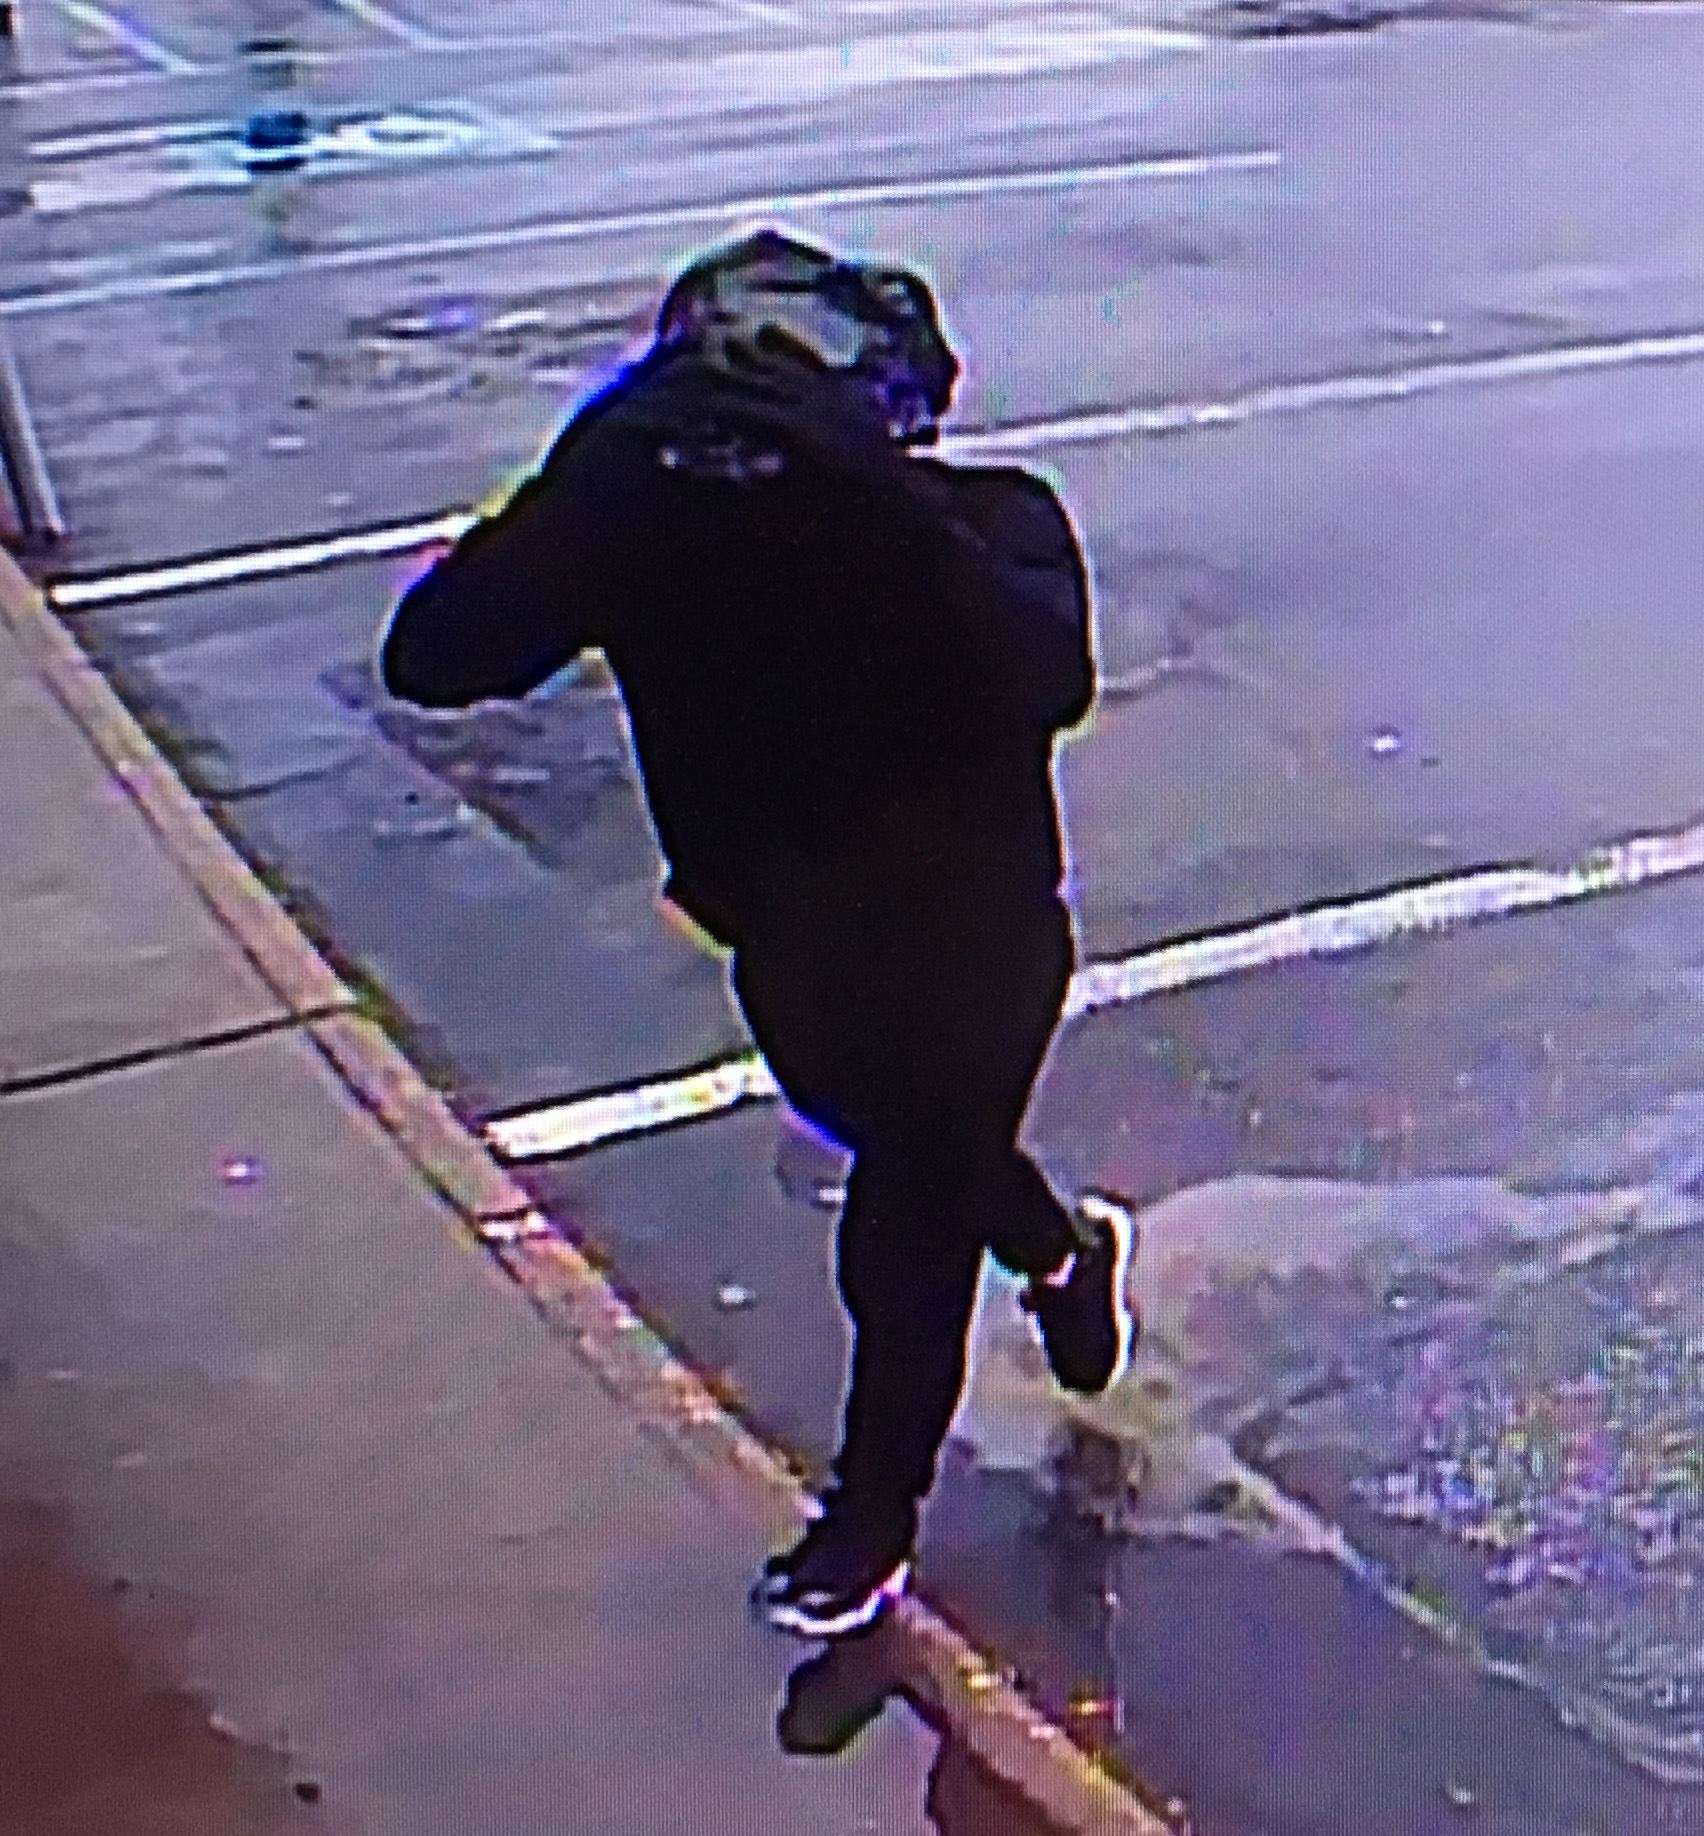 Spencers Robbery Suspect Photo 1 1-24-2019